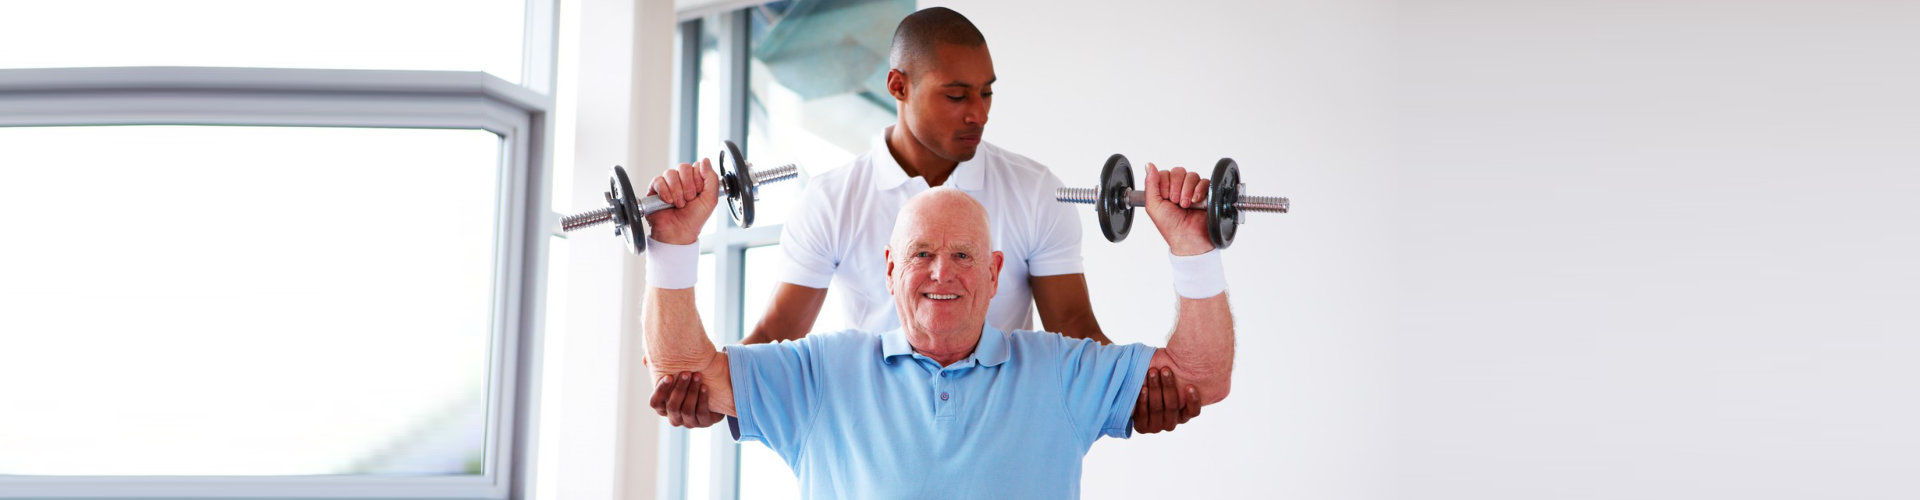 gym instructor assisting senior man doing an exercise